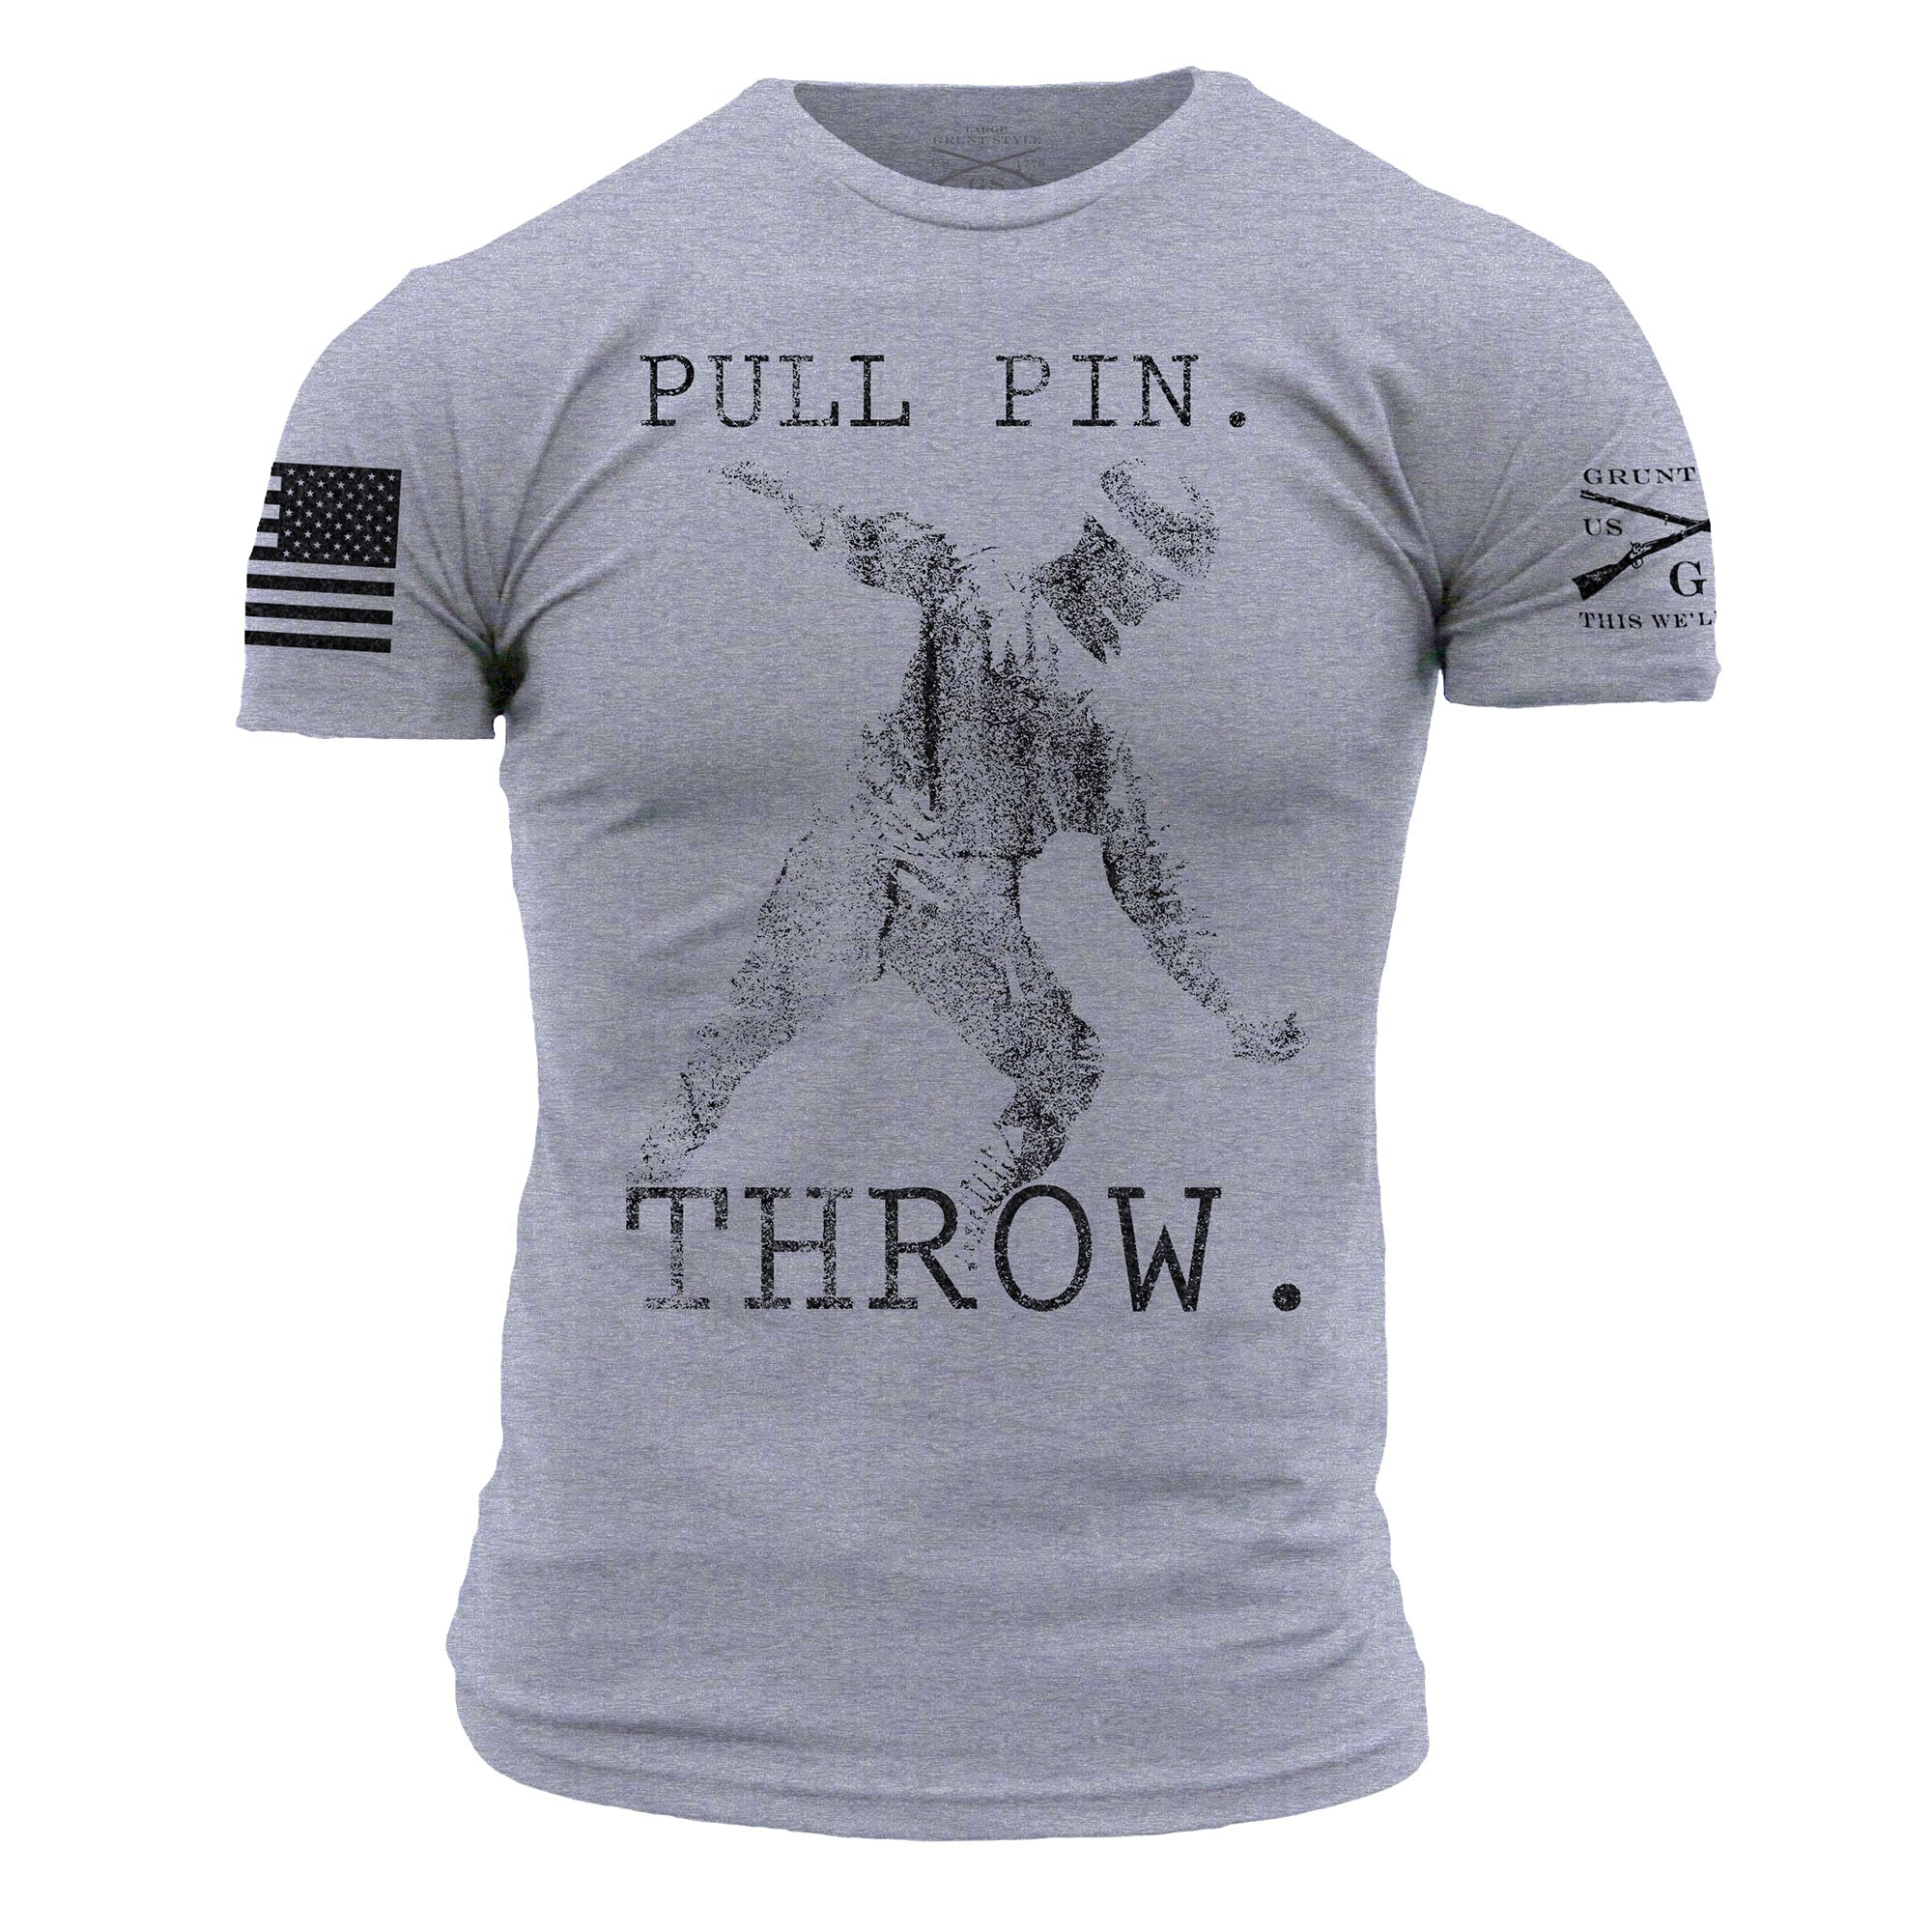 Pull Pin Throw Revisited